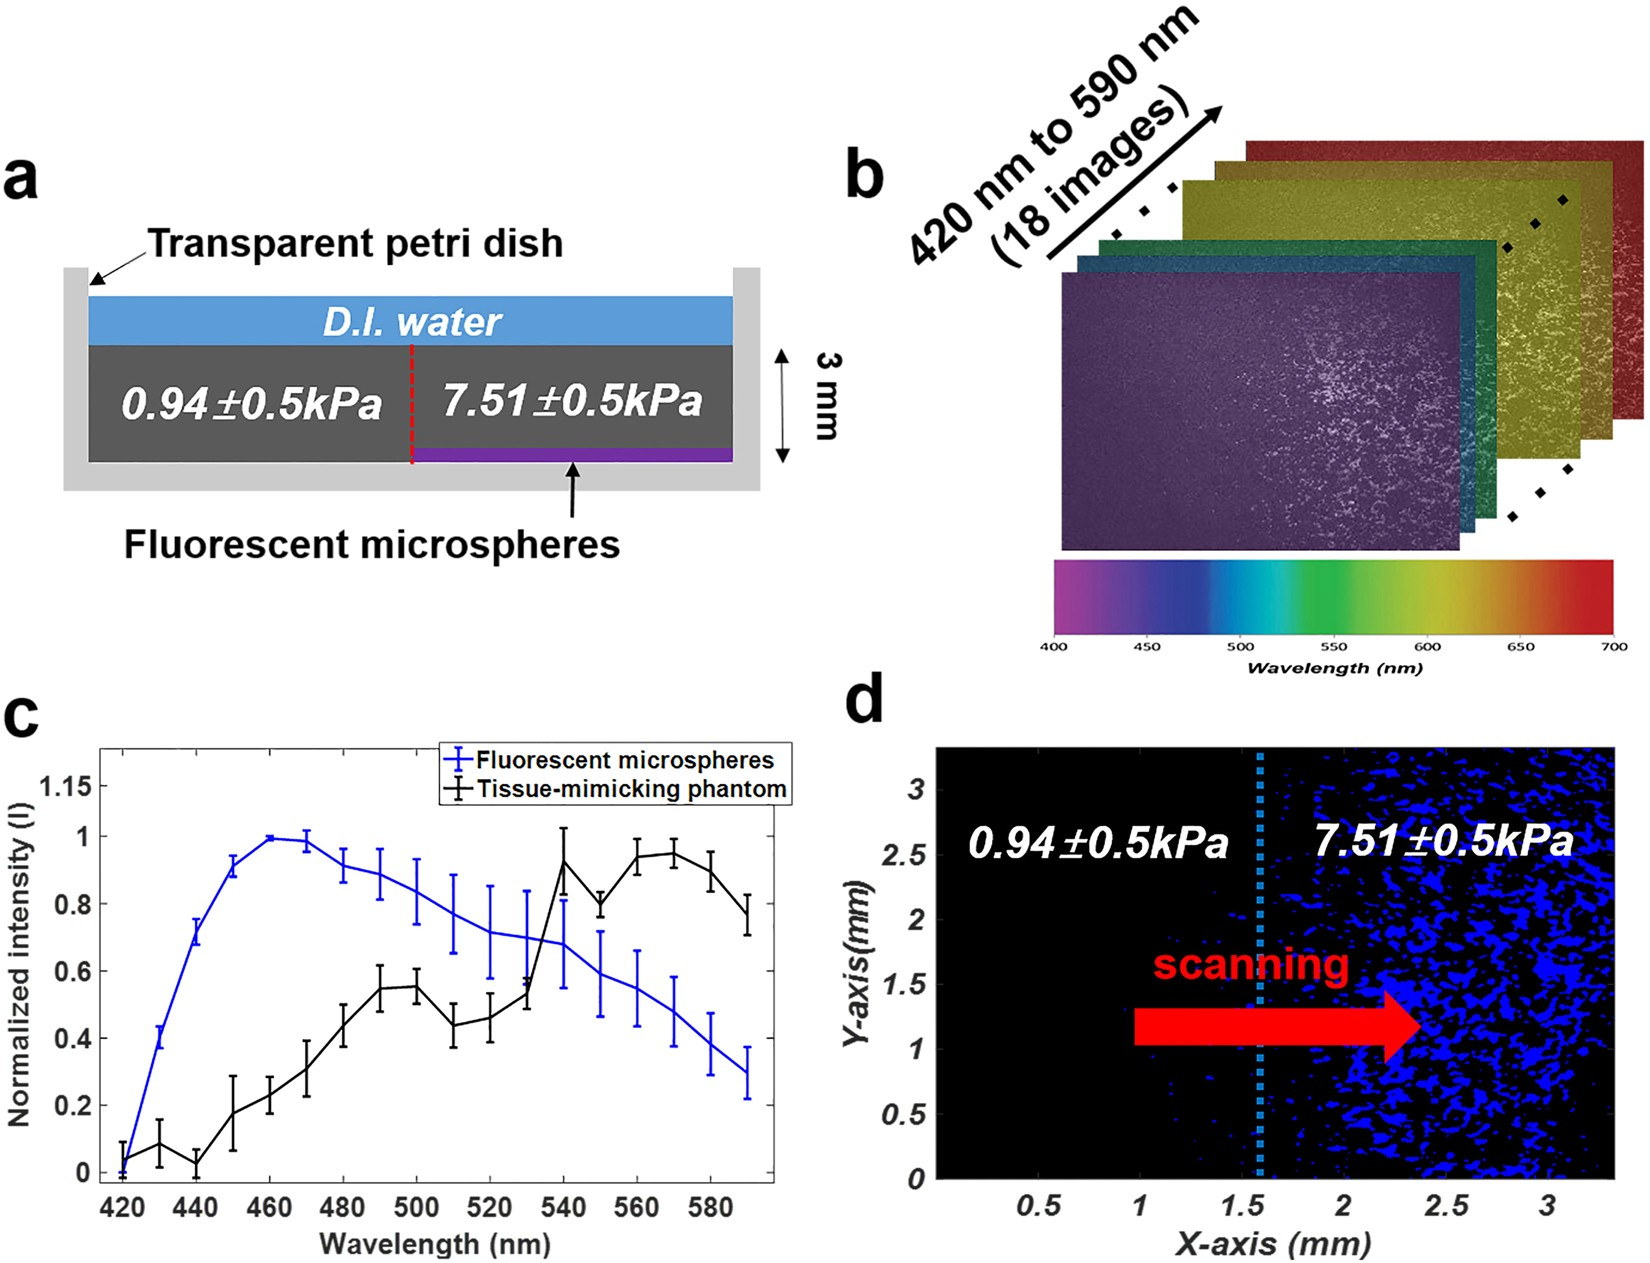 A Multimodal Biomicroscopic System Based On High Frequency Acoustic Ultrasonic Transmitter And Receiver Electronic Party Gear Radiation Force Impulse Multispectral Imaging Techniques For Tumor Characterization